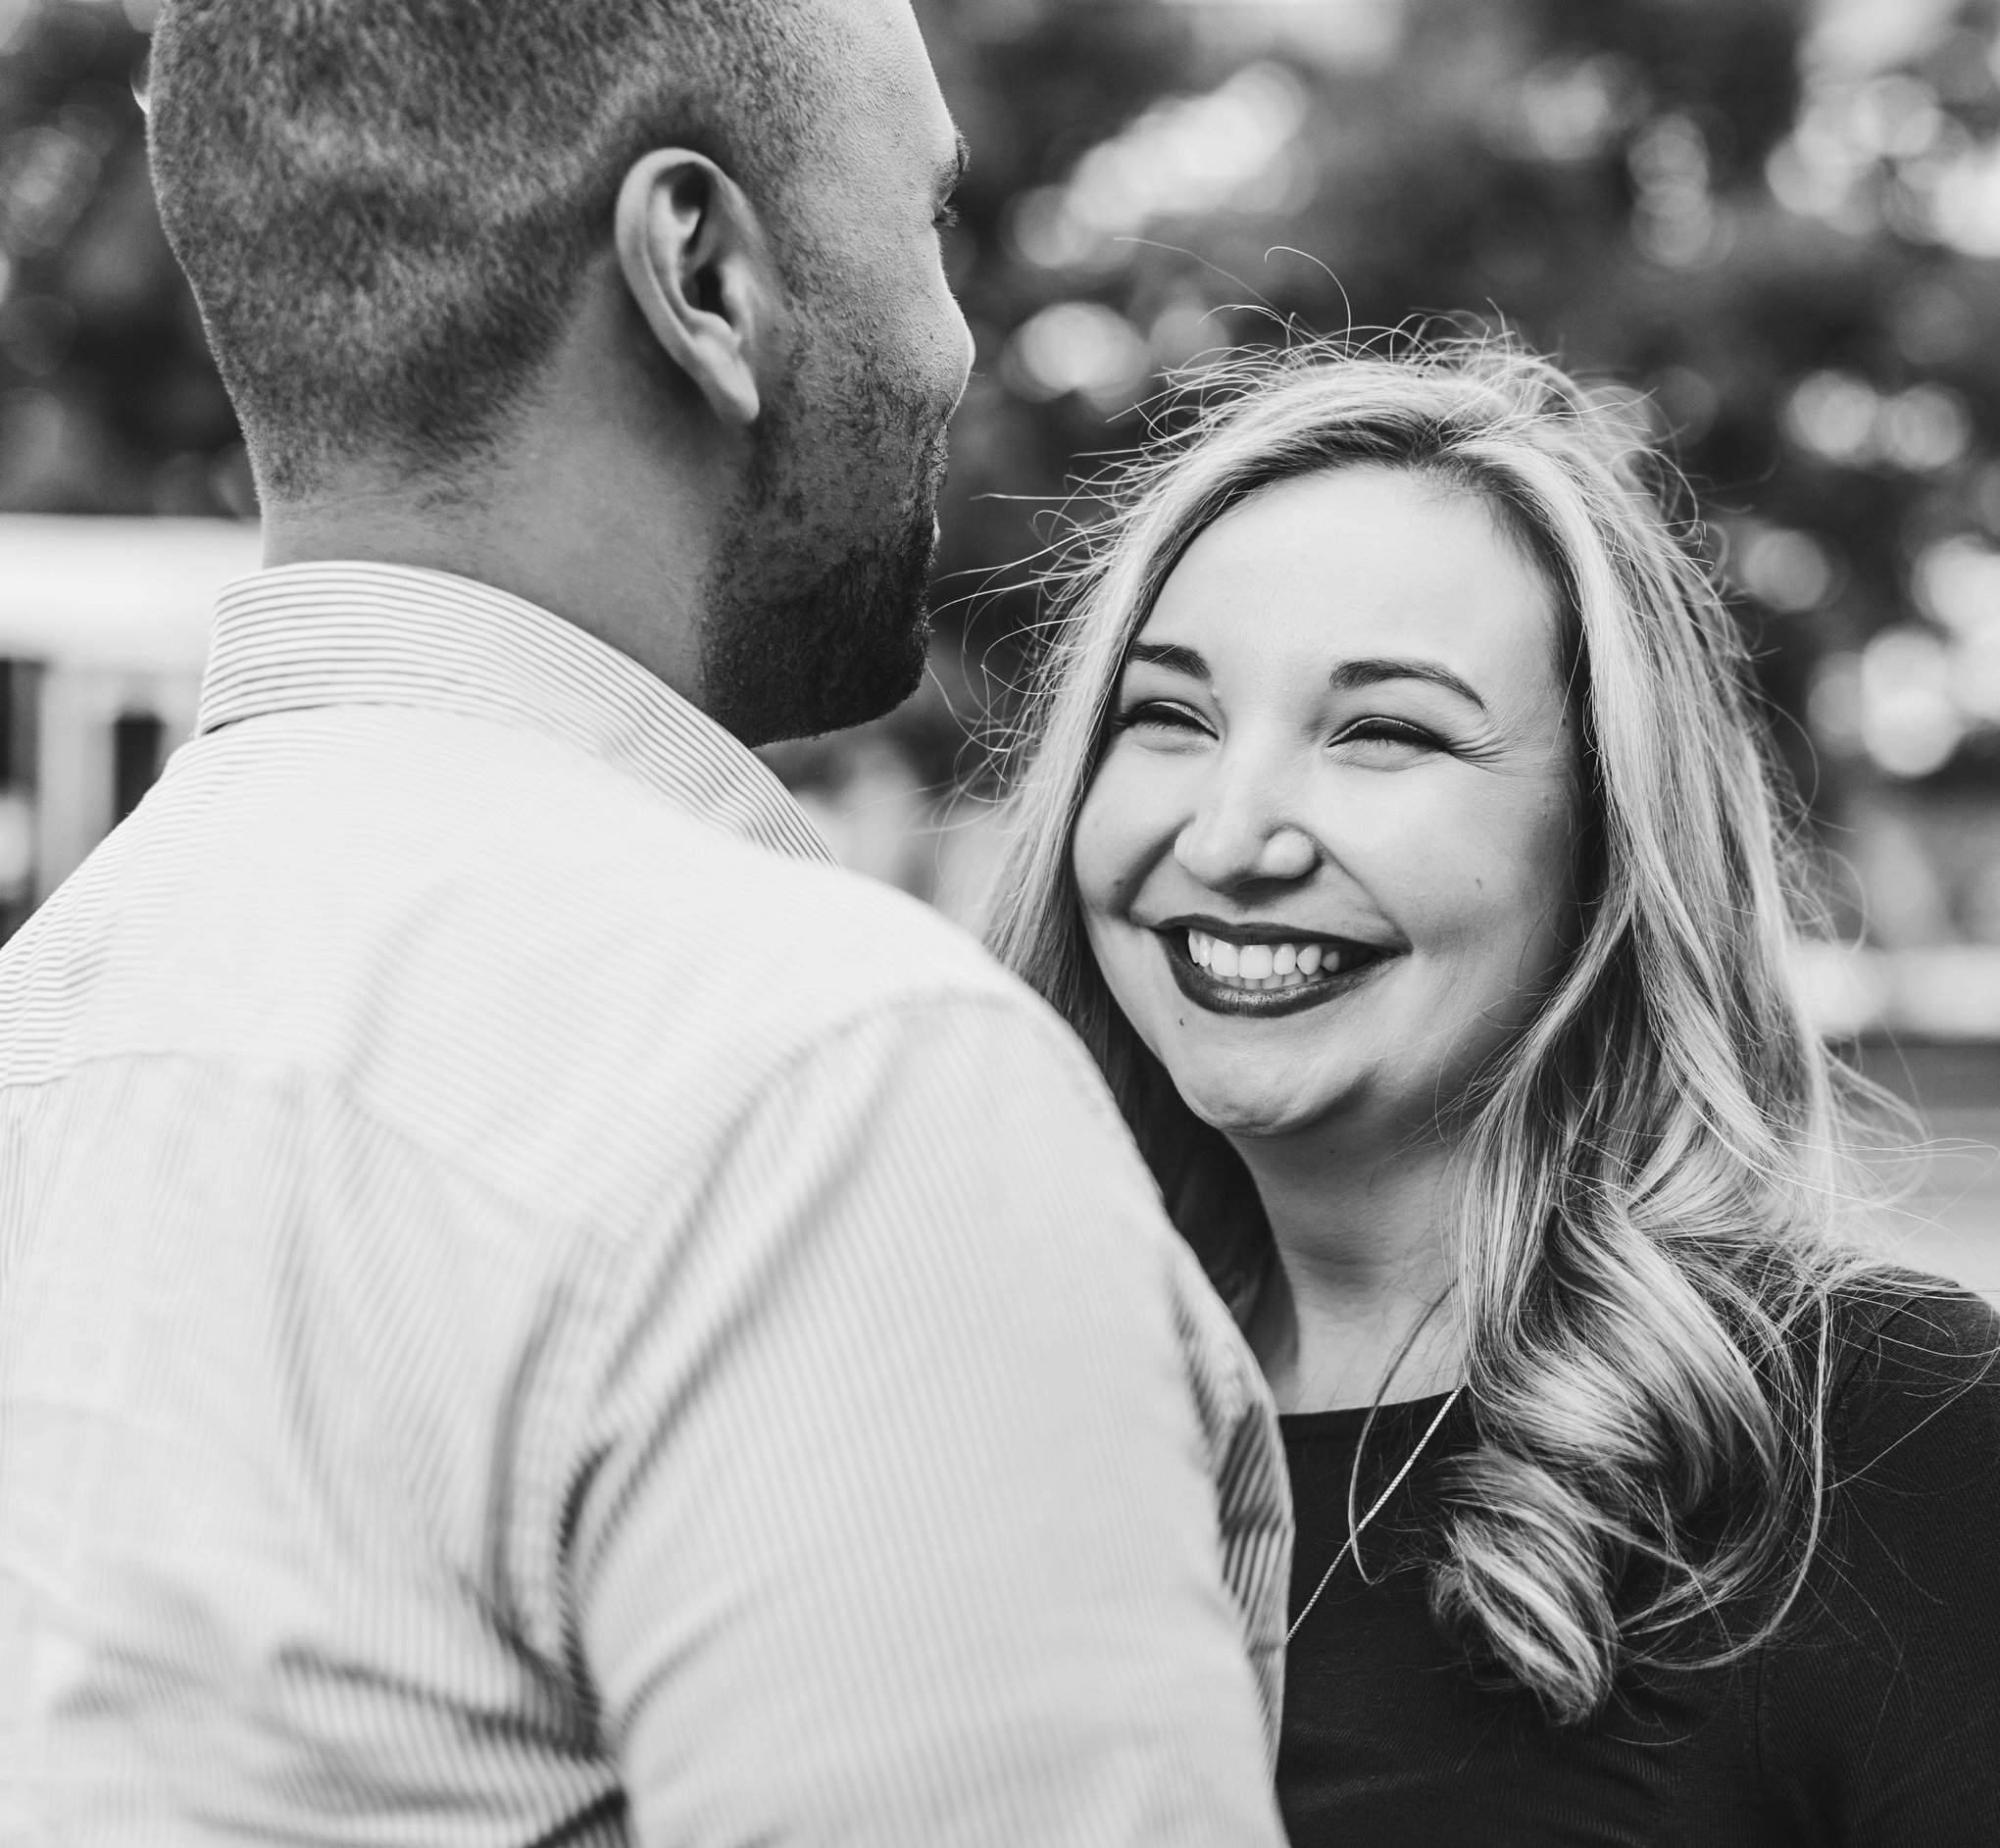 NYC_Engagement_Photographer-14.jpg